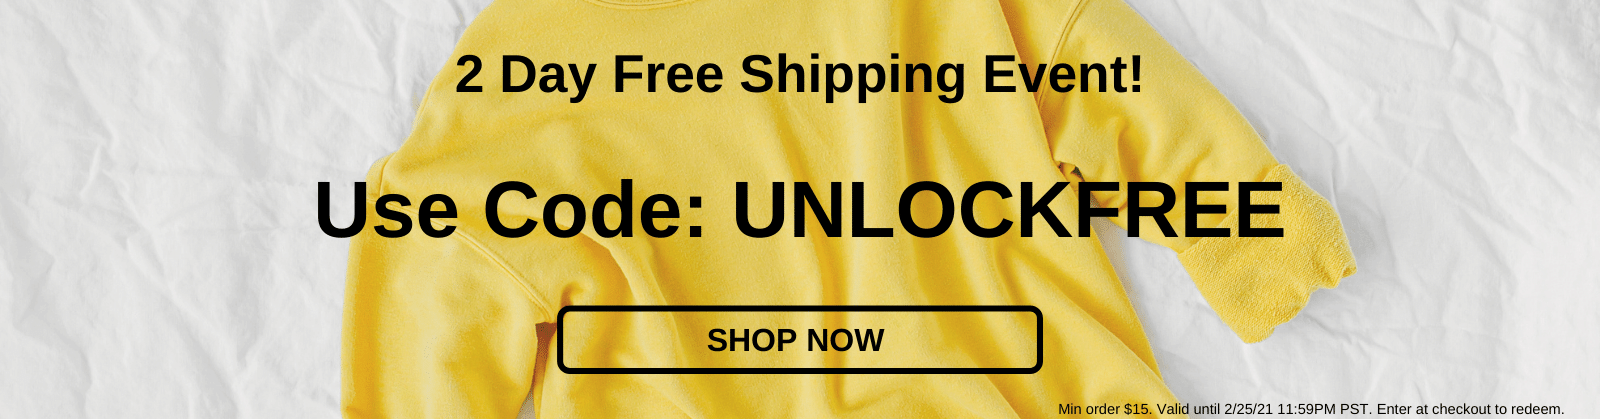 2 Day Free Shipping Event! Use Code UNLOCKFREE [Shop Sale]